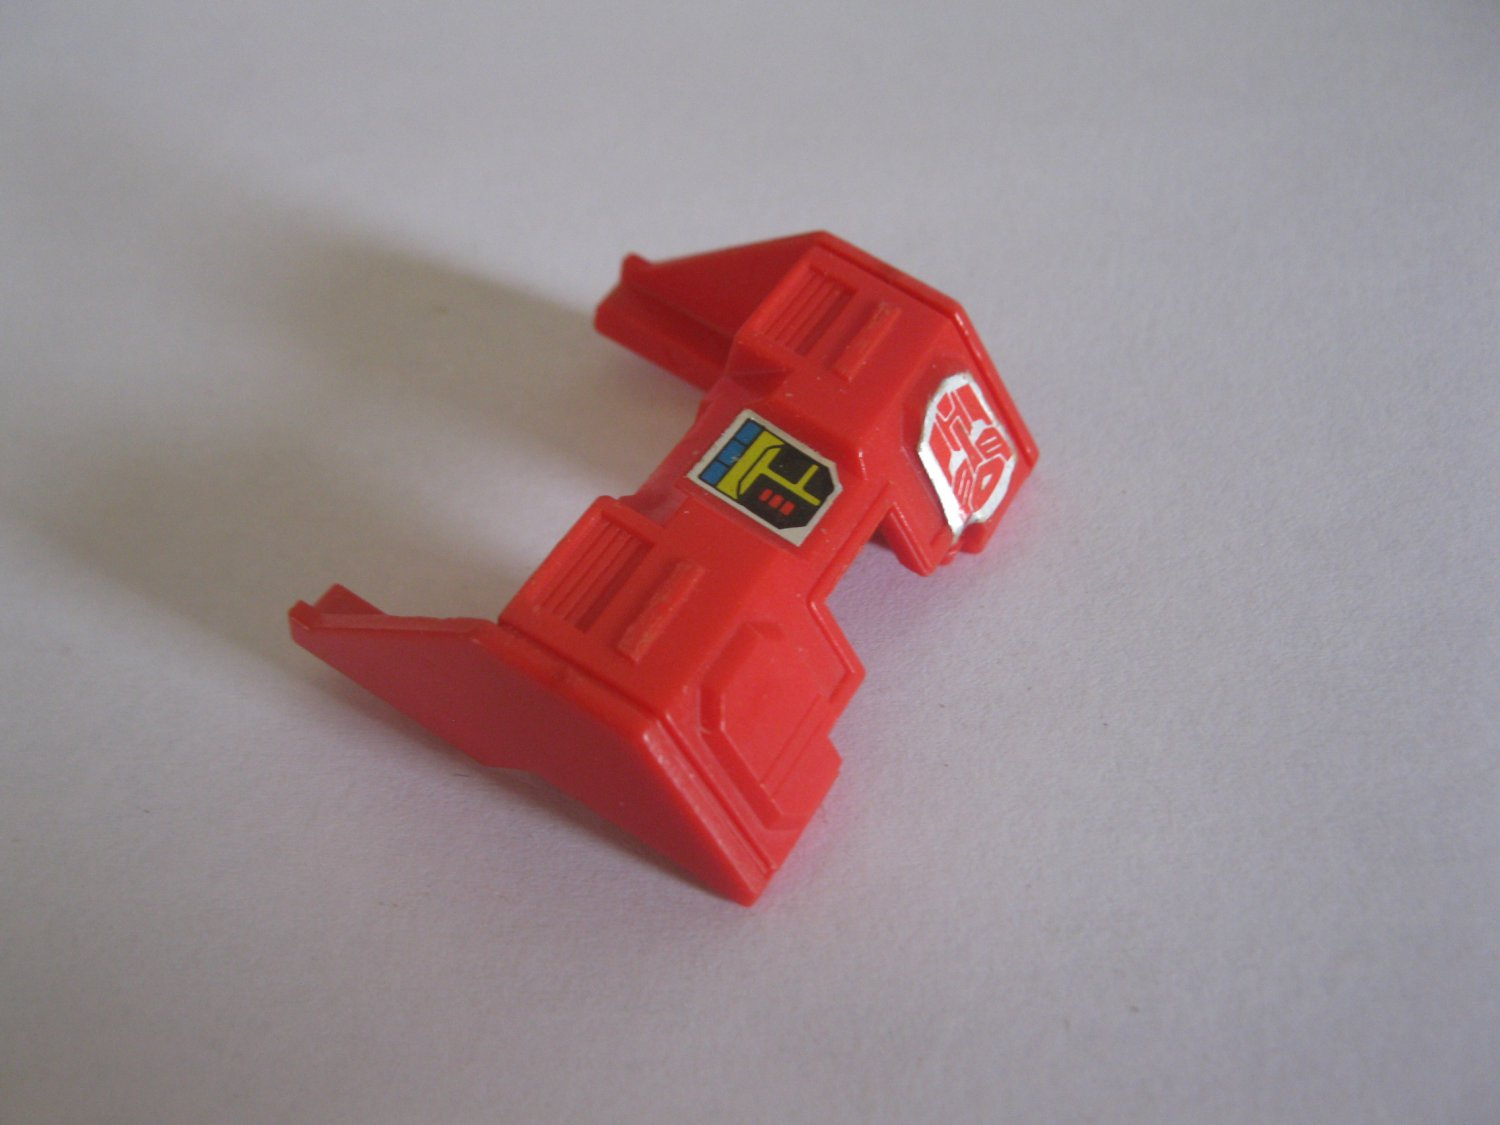 G1 Transformers Action figure part: 1985 Silverbolt - Red Chest Armor